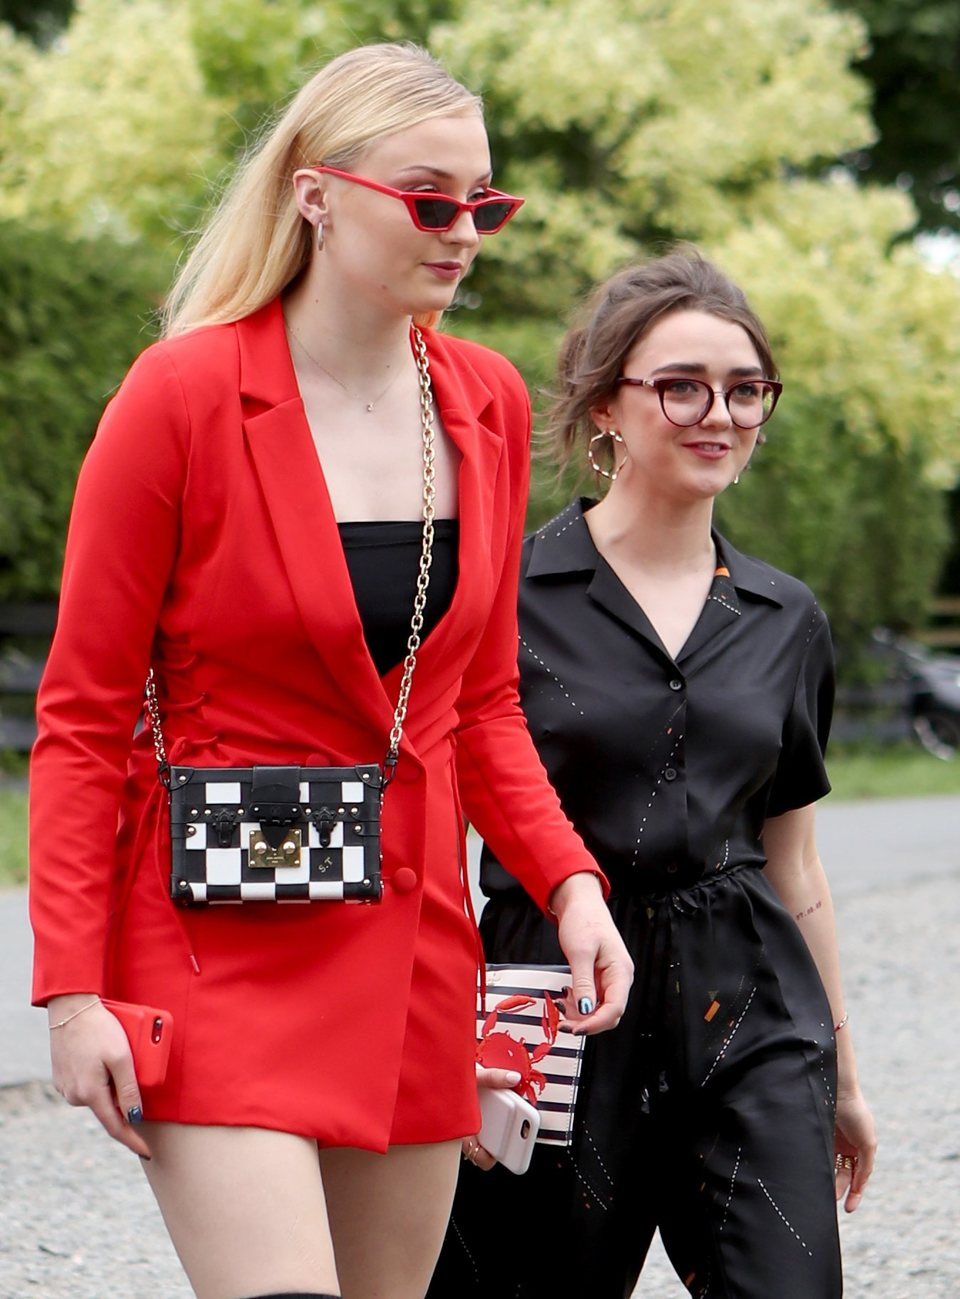 Sophie Turner y Maisie Williams llegan a la boda de Kit Harington y Rose Leslie